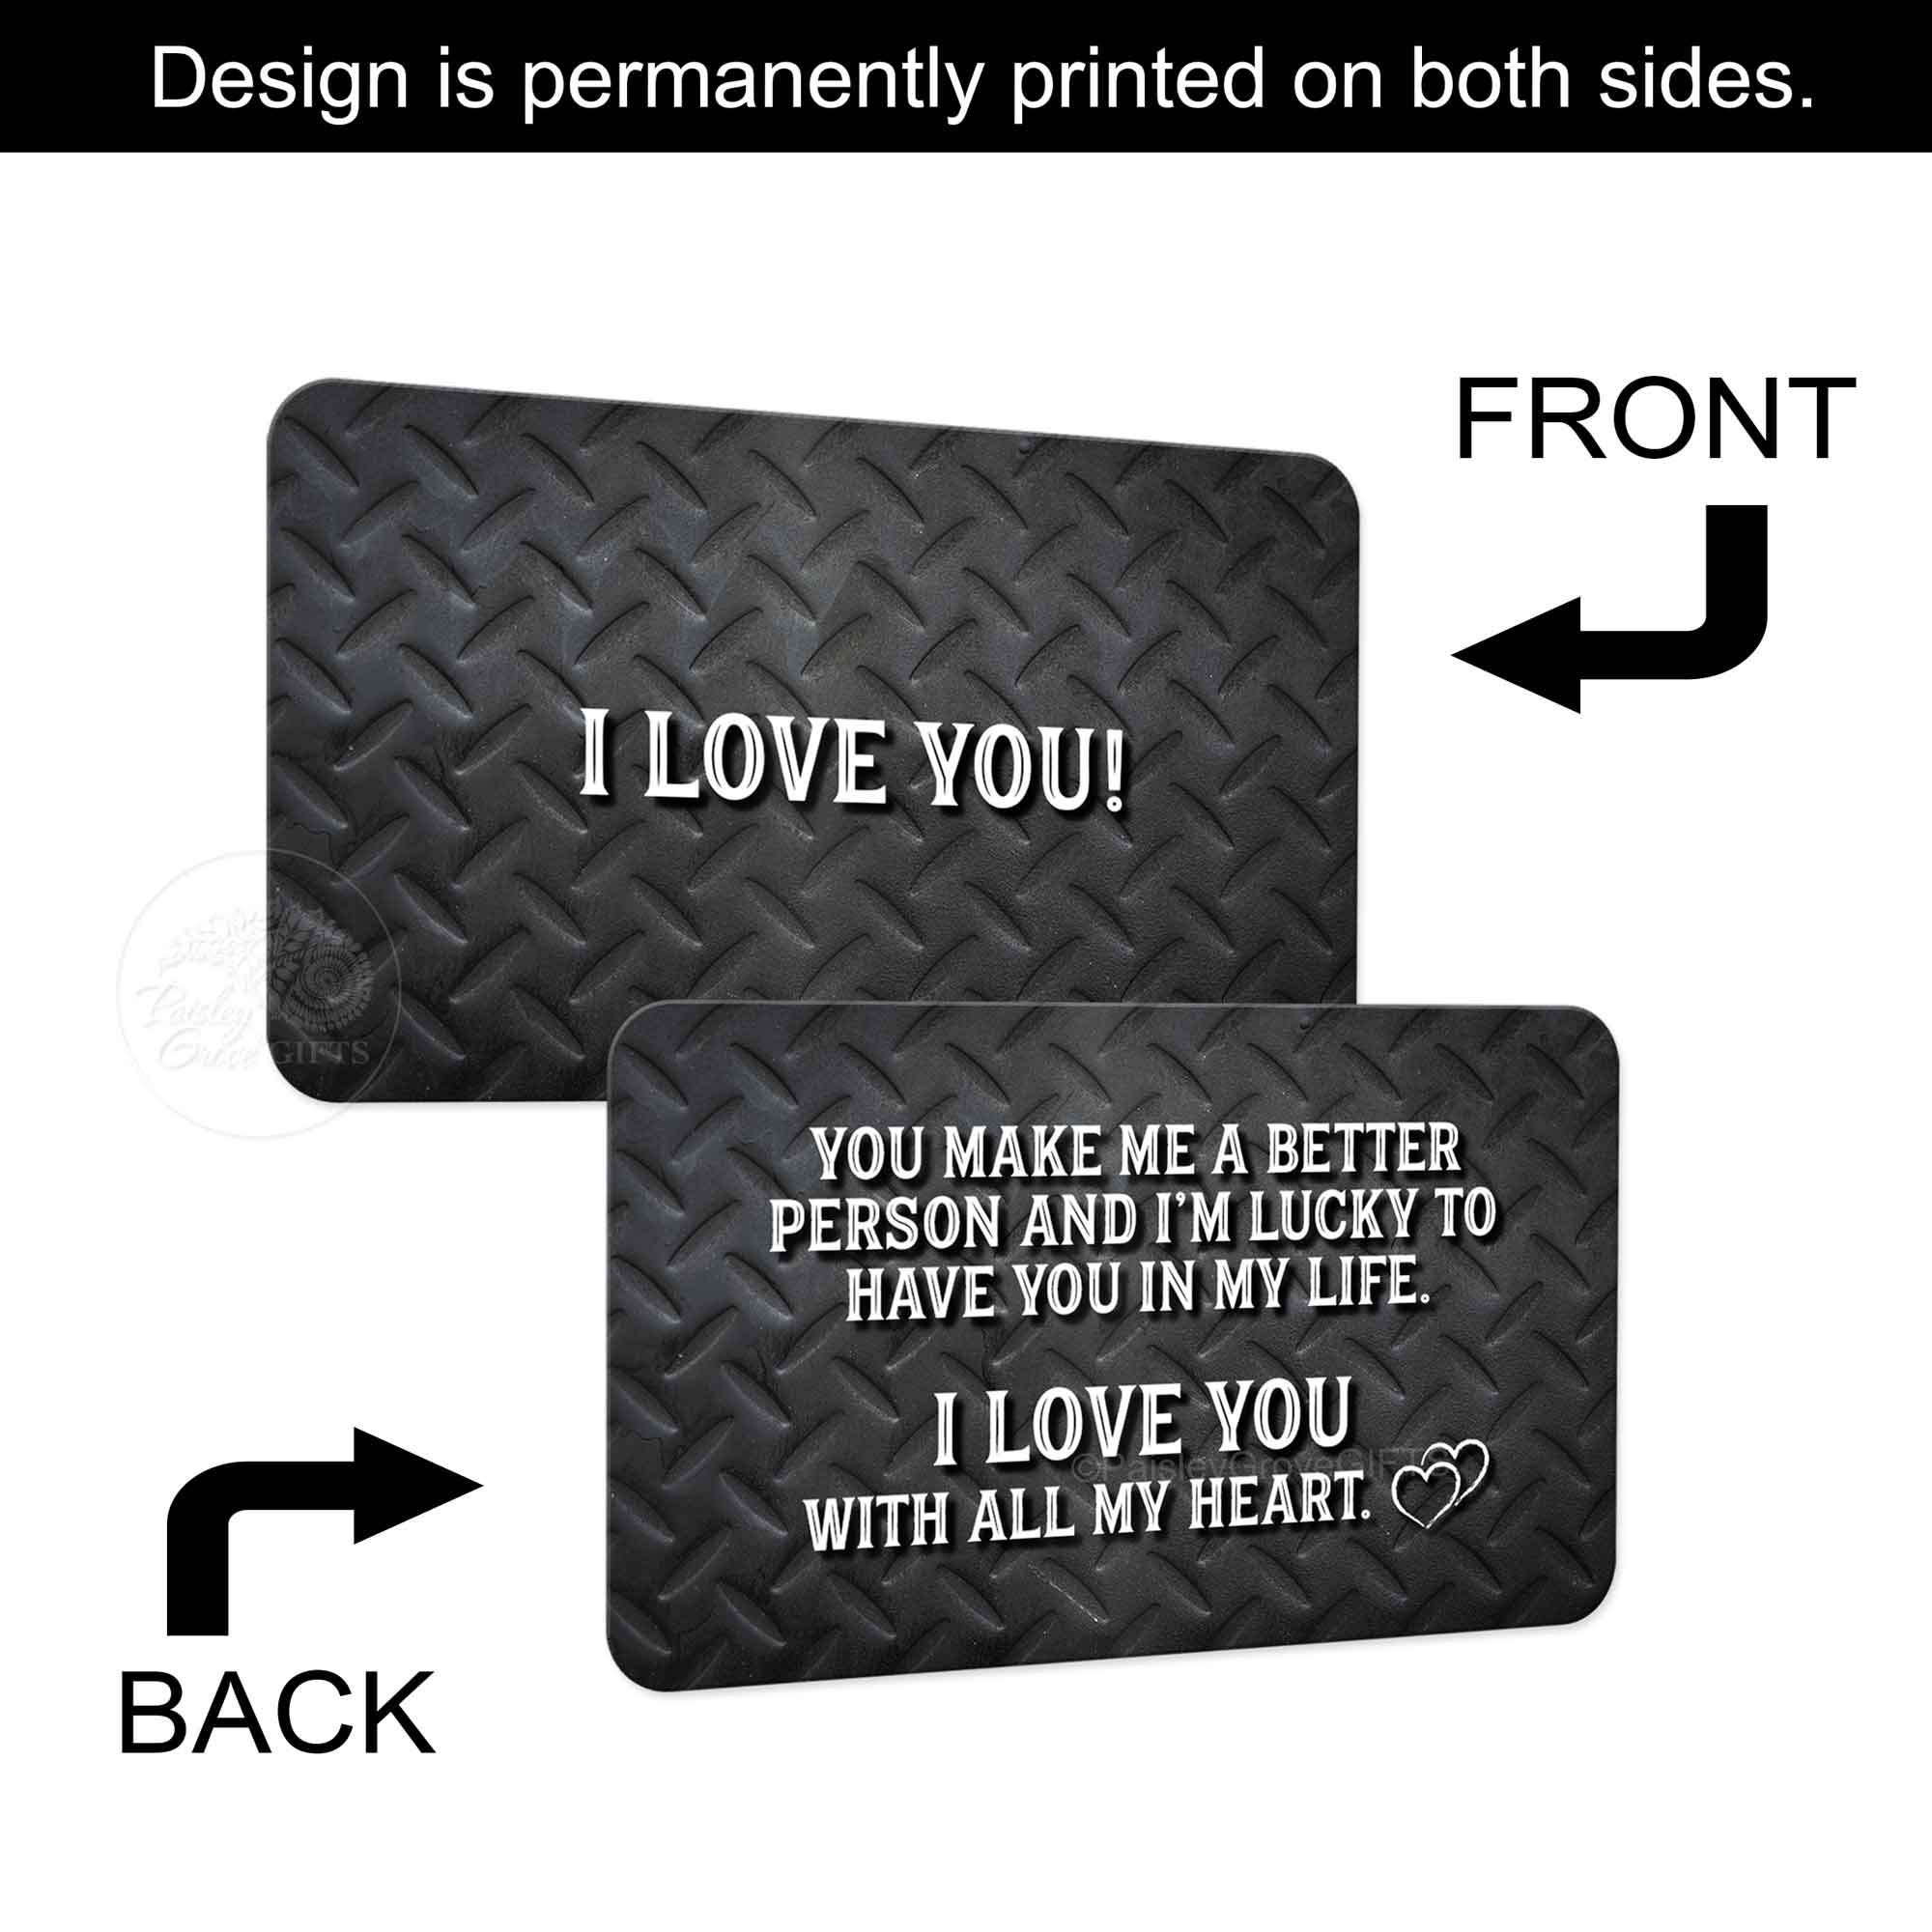 Copyright PaisleyGroveGIFTS S600a1 Permanent print on both sides of this metal wallet insert card for men